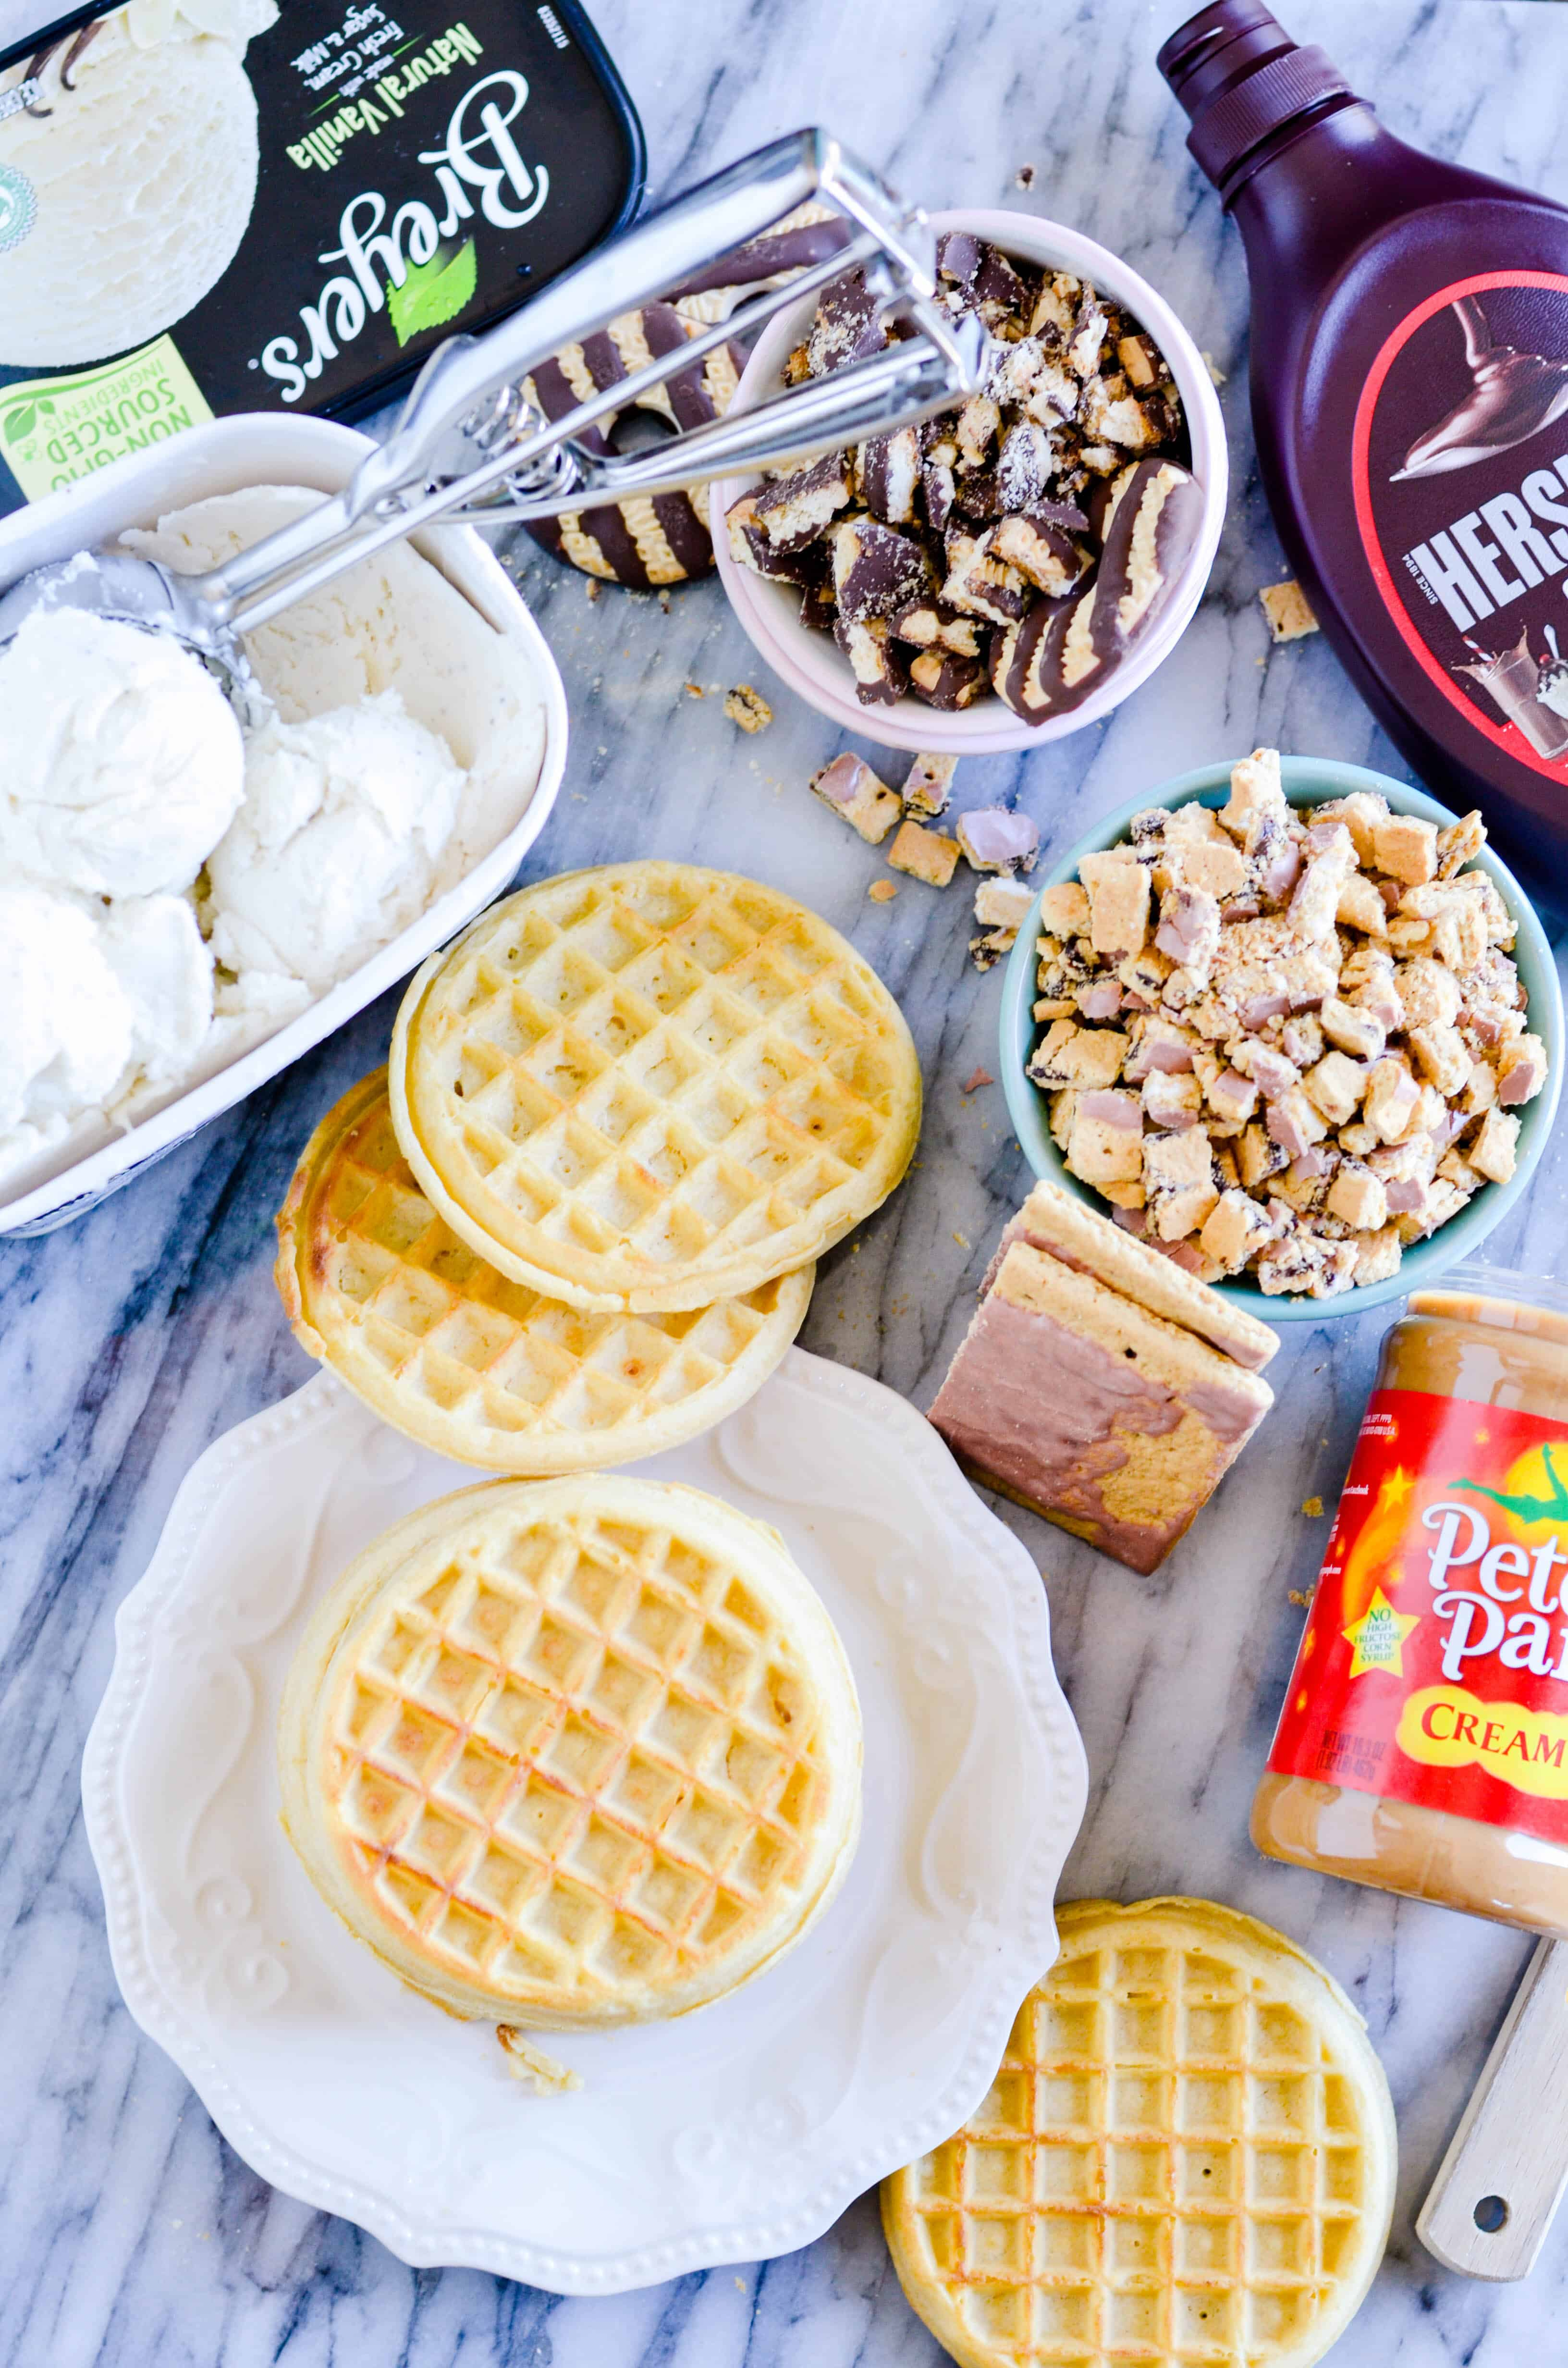 This Chocolate Peanut Butter Waffle Ice Cream Blast brings the fun and flavor of a waffle truck right into your kitchen at home!